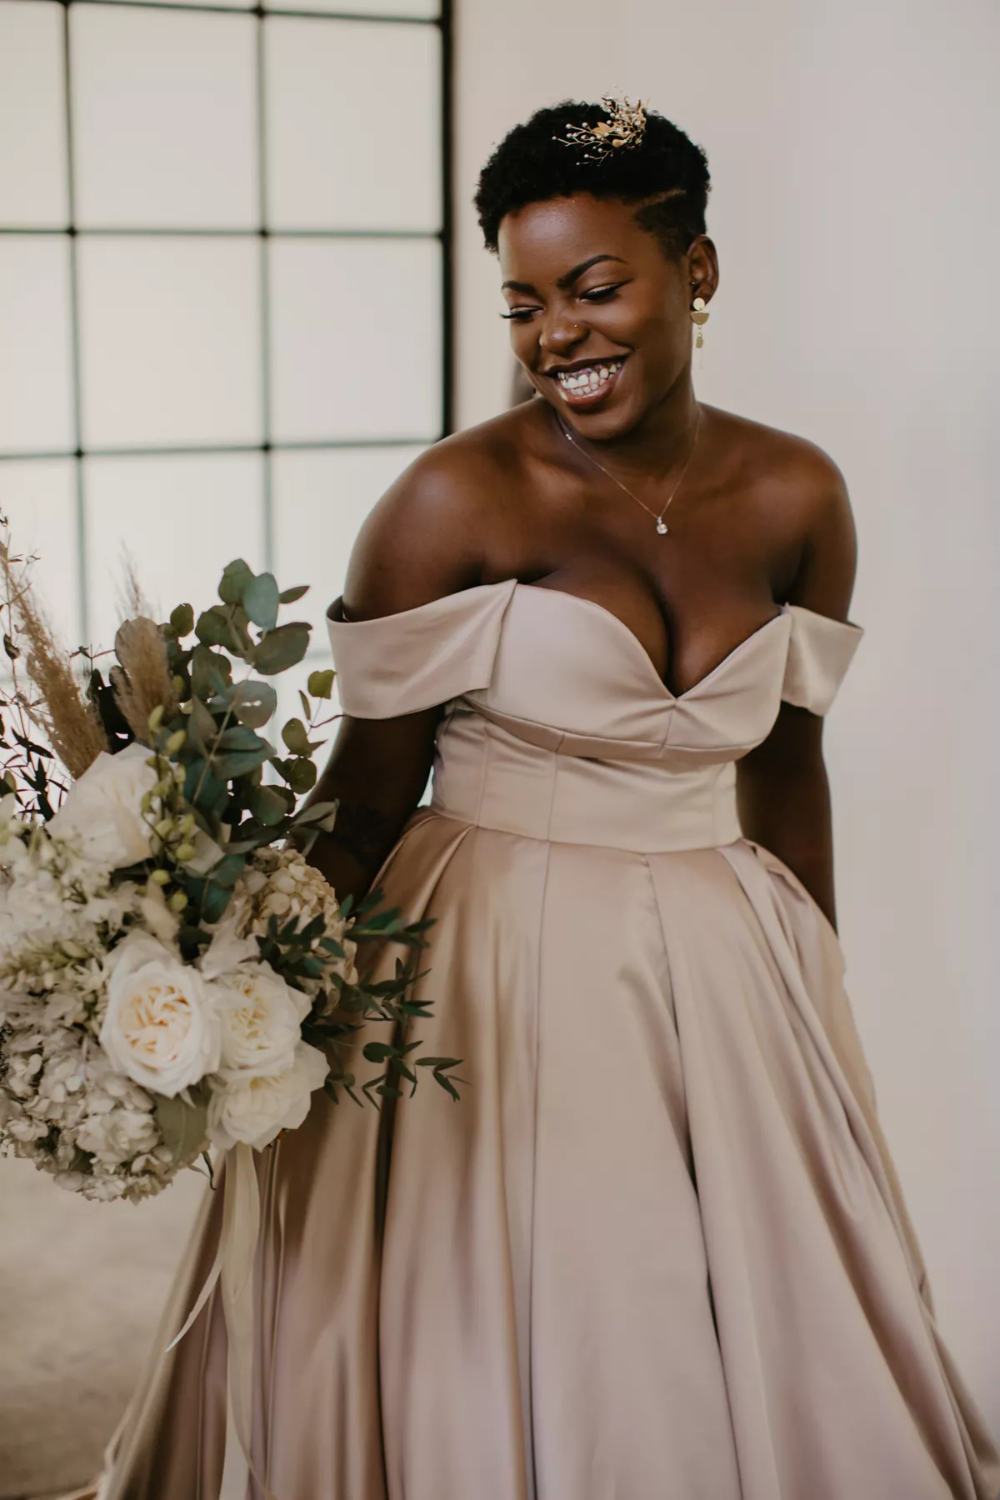 An Intimate Wedding At A Lush Outdoor Venue In Pretoria South Africa In 2021 Beautiful Wedding Dresses Wedding Dresses Best Wedding Dresses [ 1500 x 1000 Pixel ]